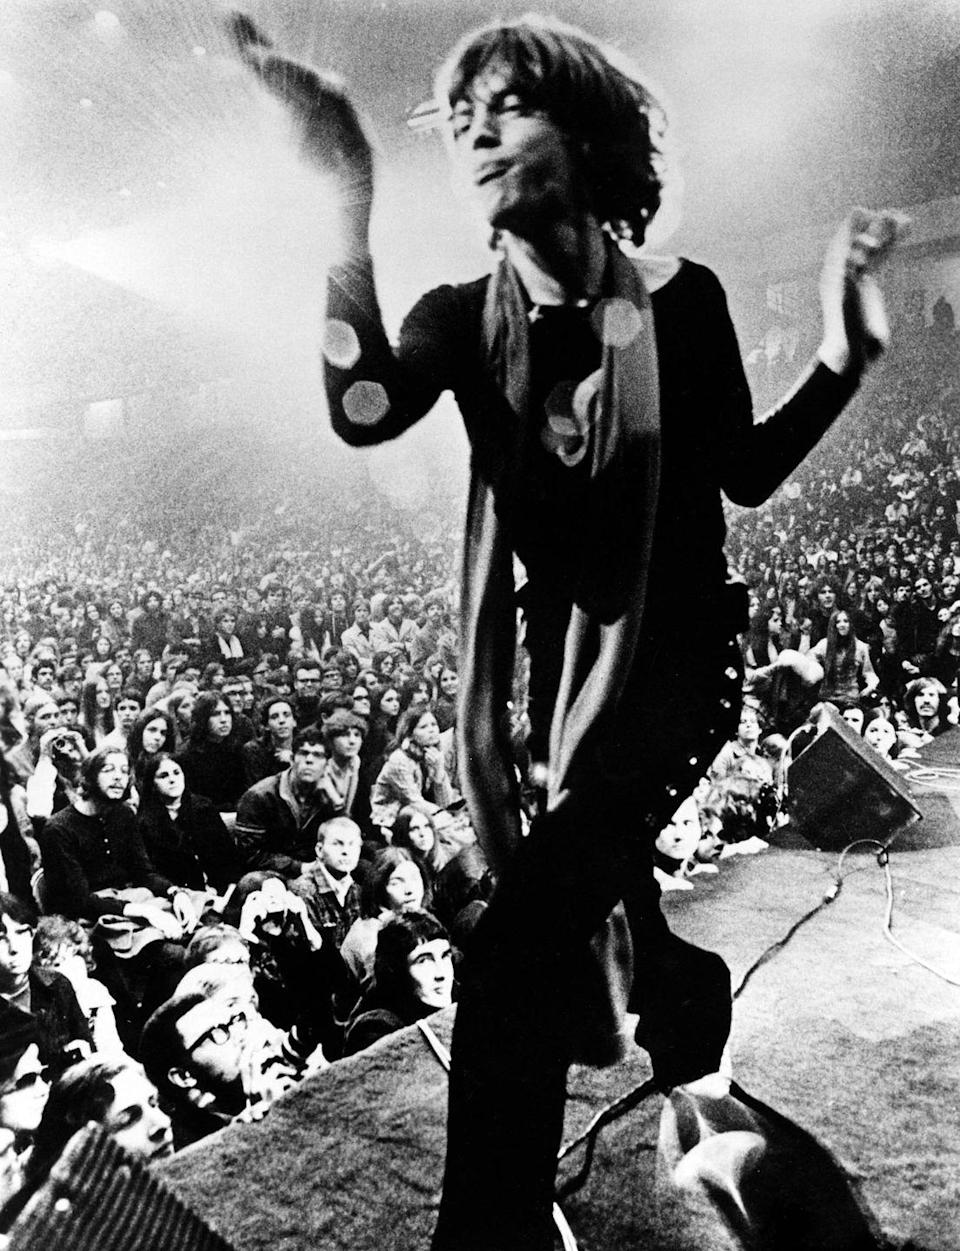 <p>Mick Jagger performing on stage in 1969.</p>